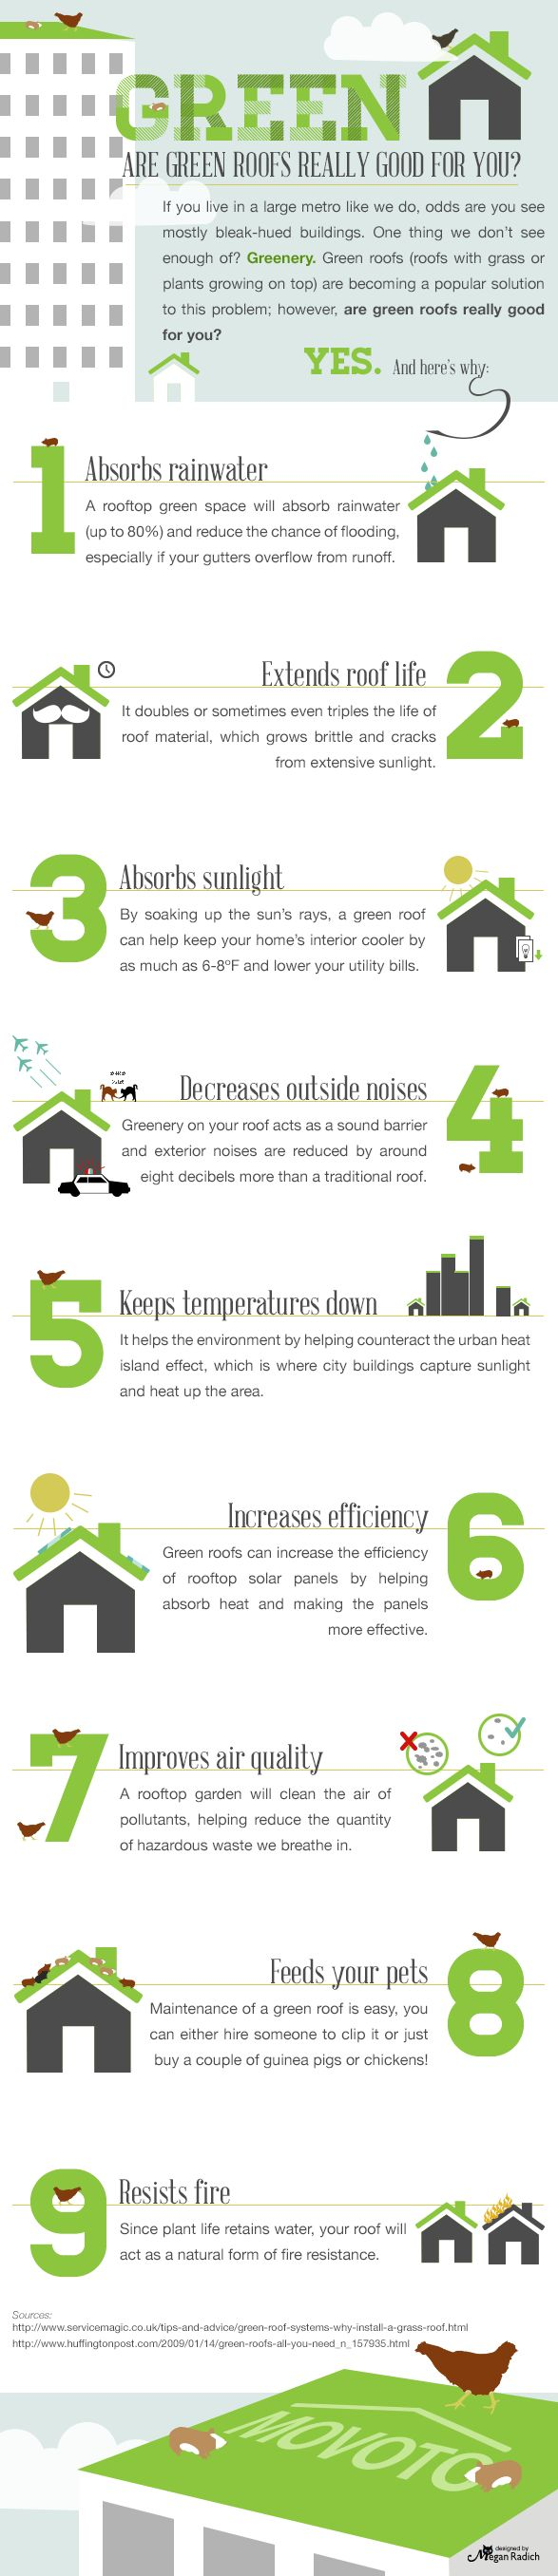 Are green roofs really good for you? #infographic #greenroof #environment